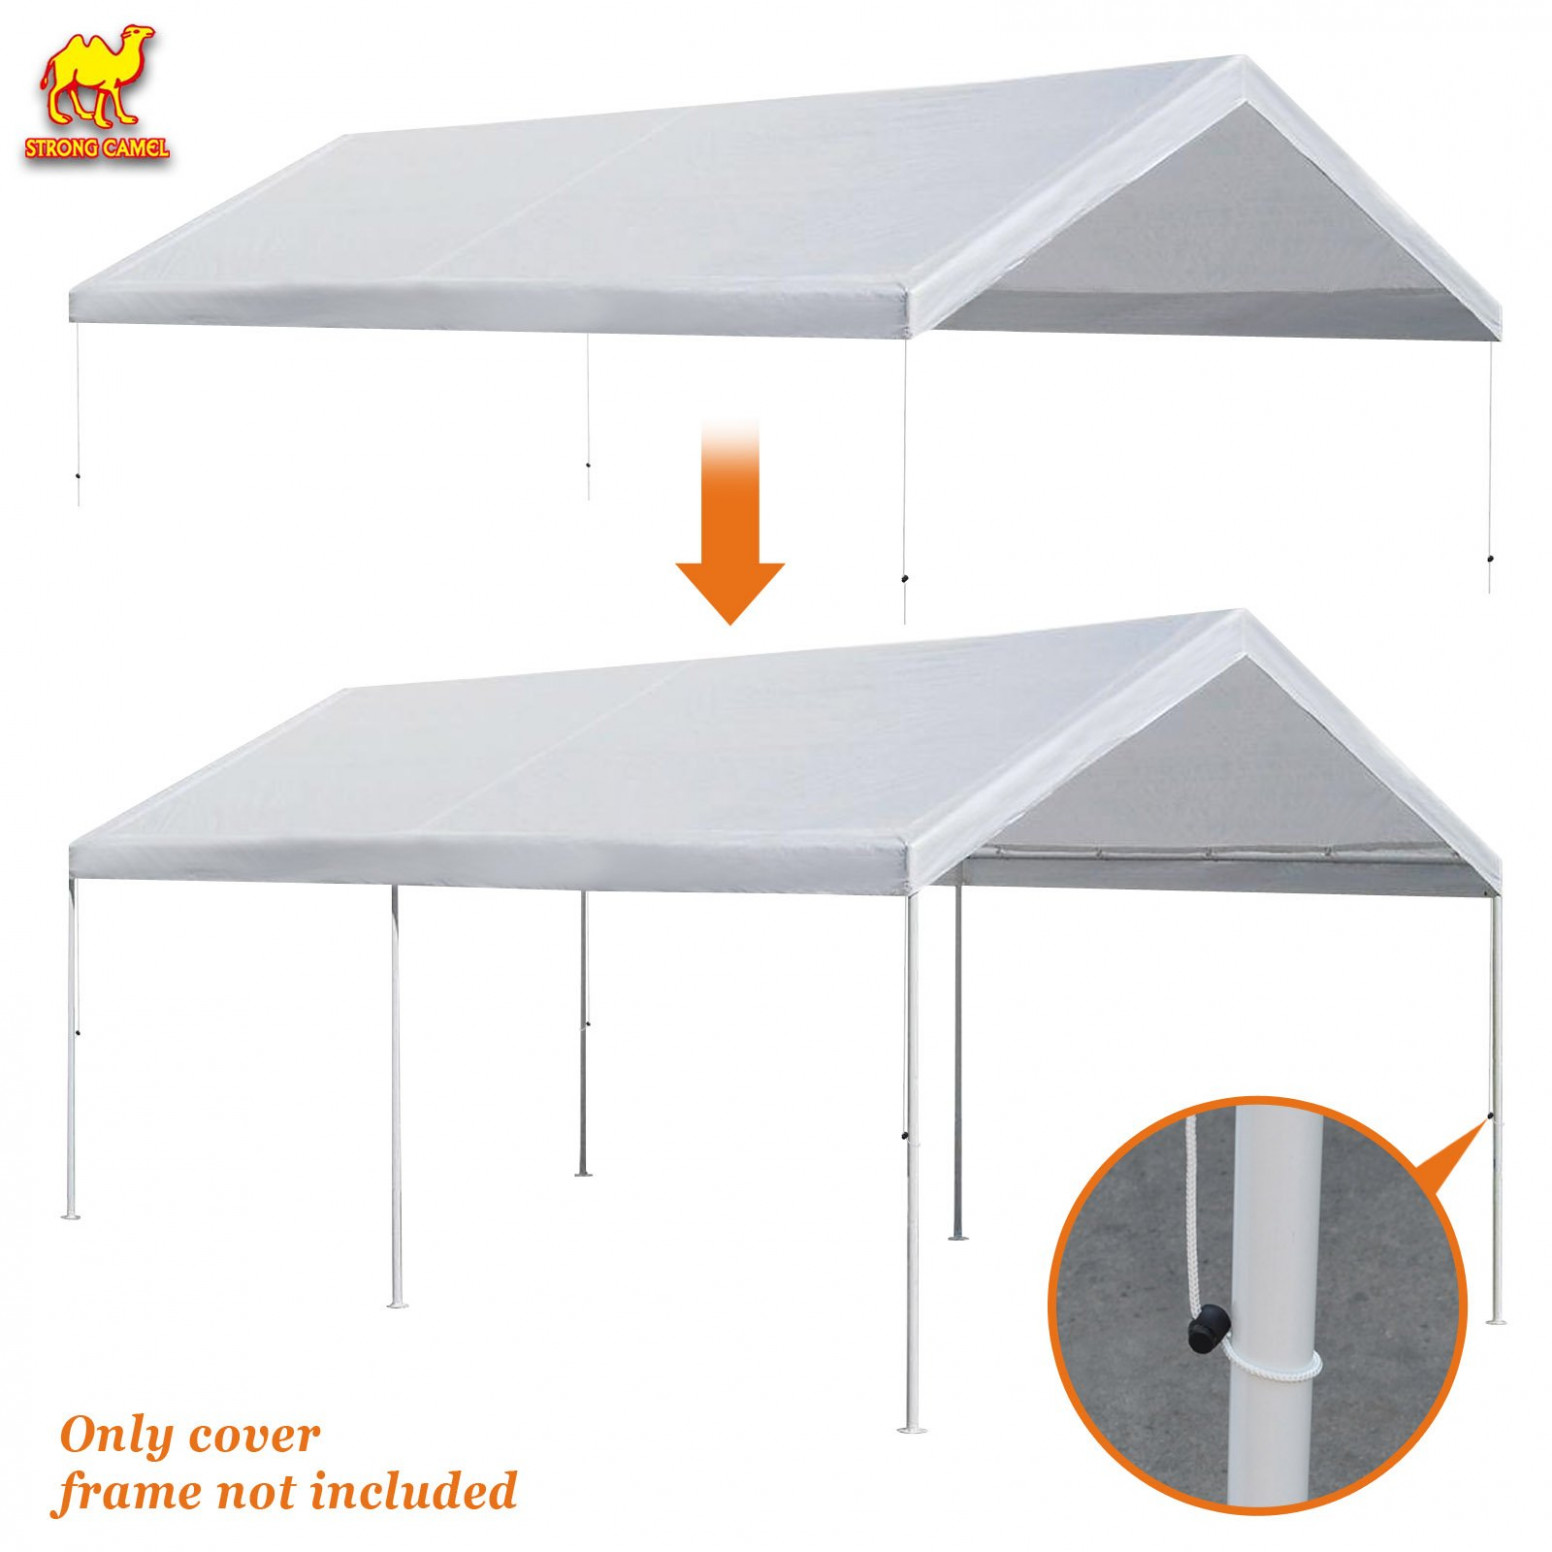 Buy Strong Camel 7x7 Carport Replacement Canopy Cover For ..